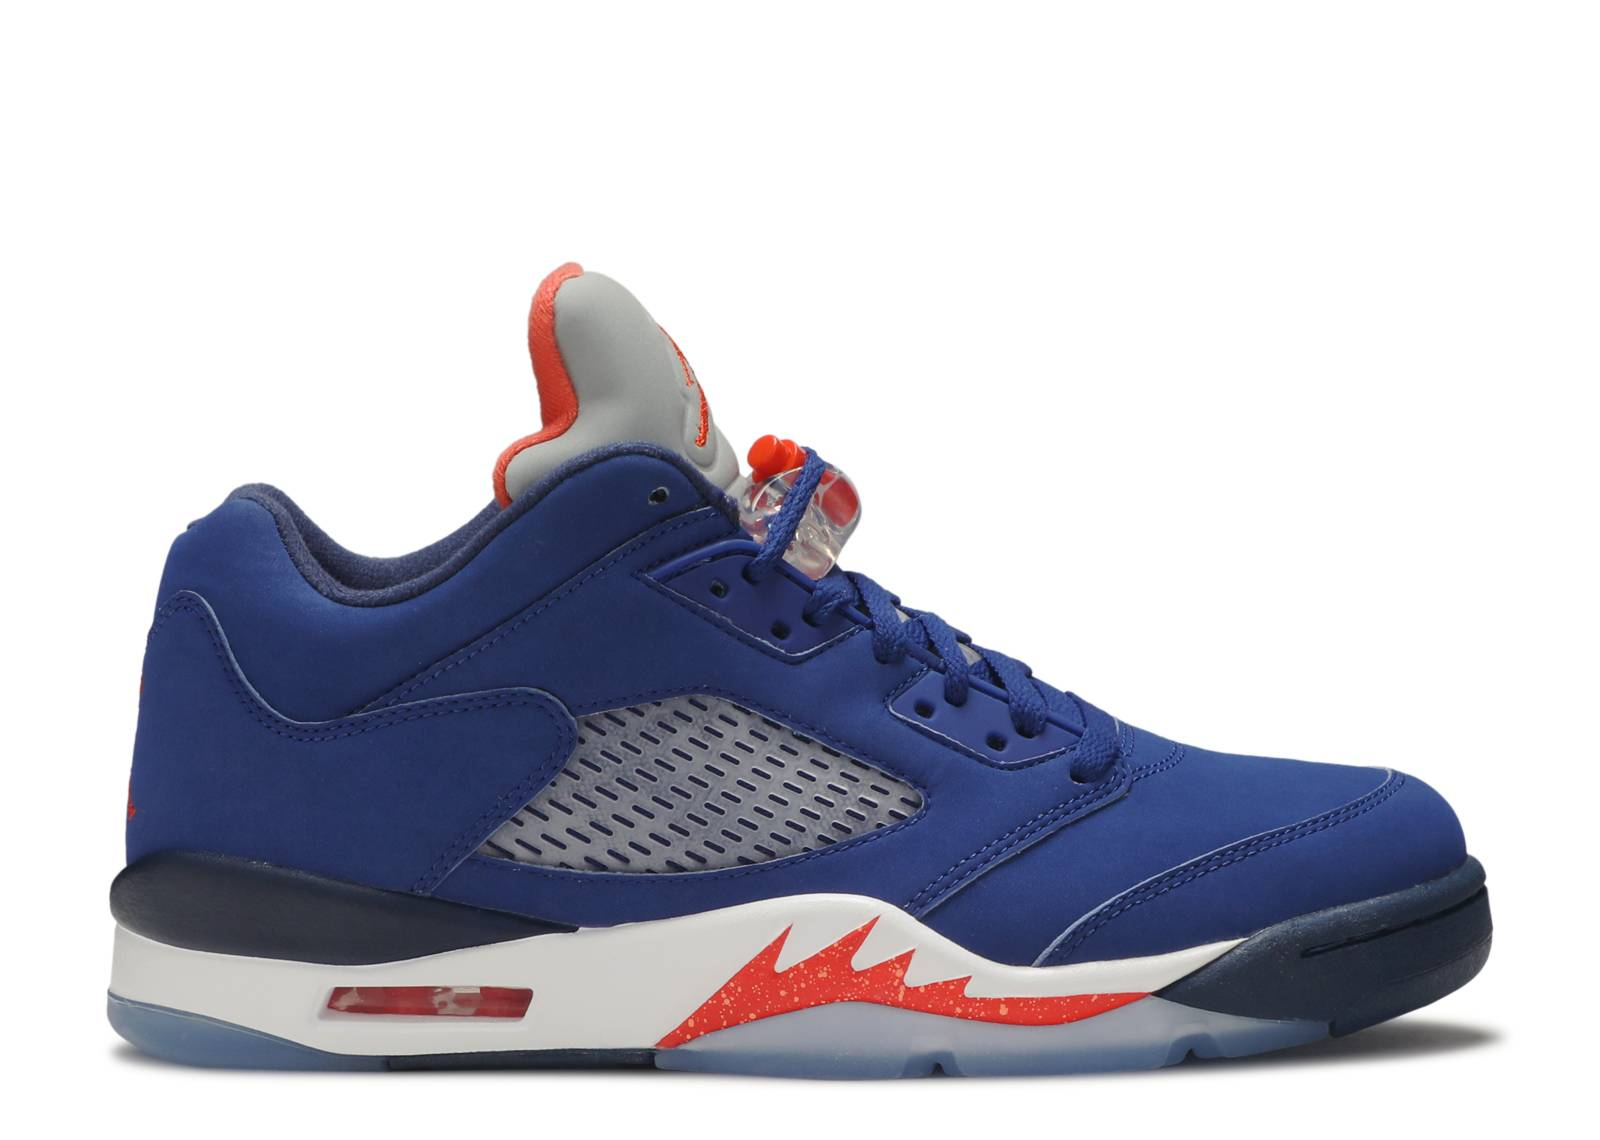 4c45ac3f2b7 Air Jordan 5 Retro Low